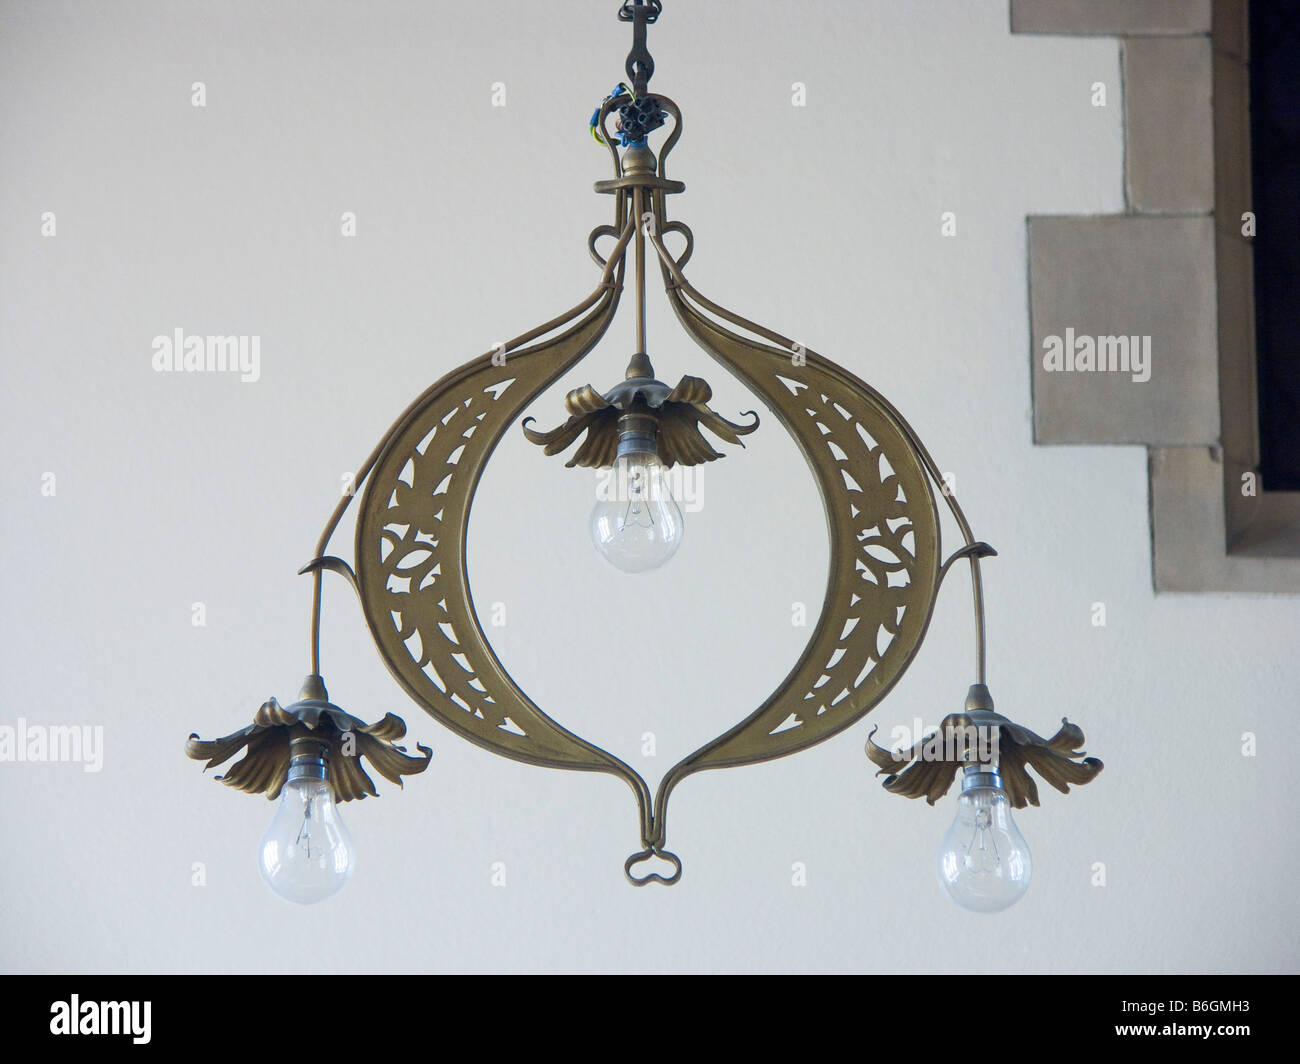 Holy Rood Church, Watford, UK. Electric light fittings designed by Bentley circa 1900 - Stock Image